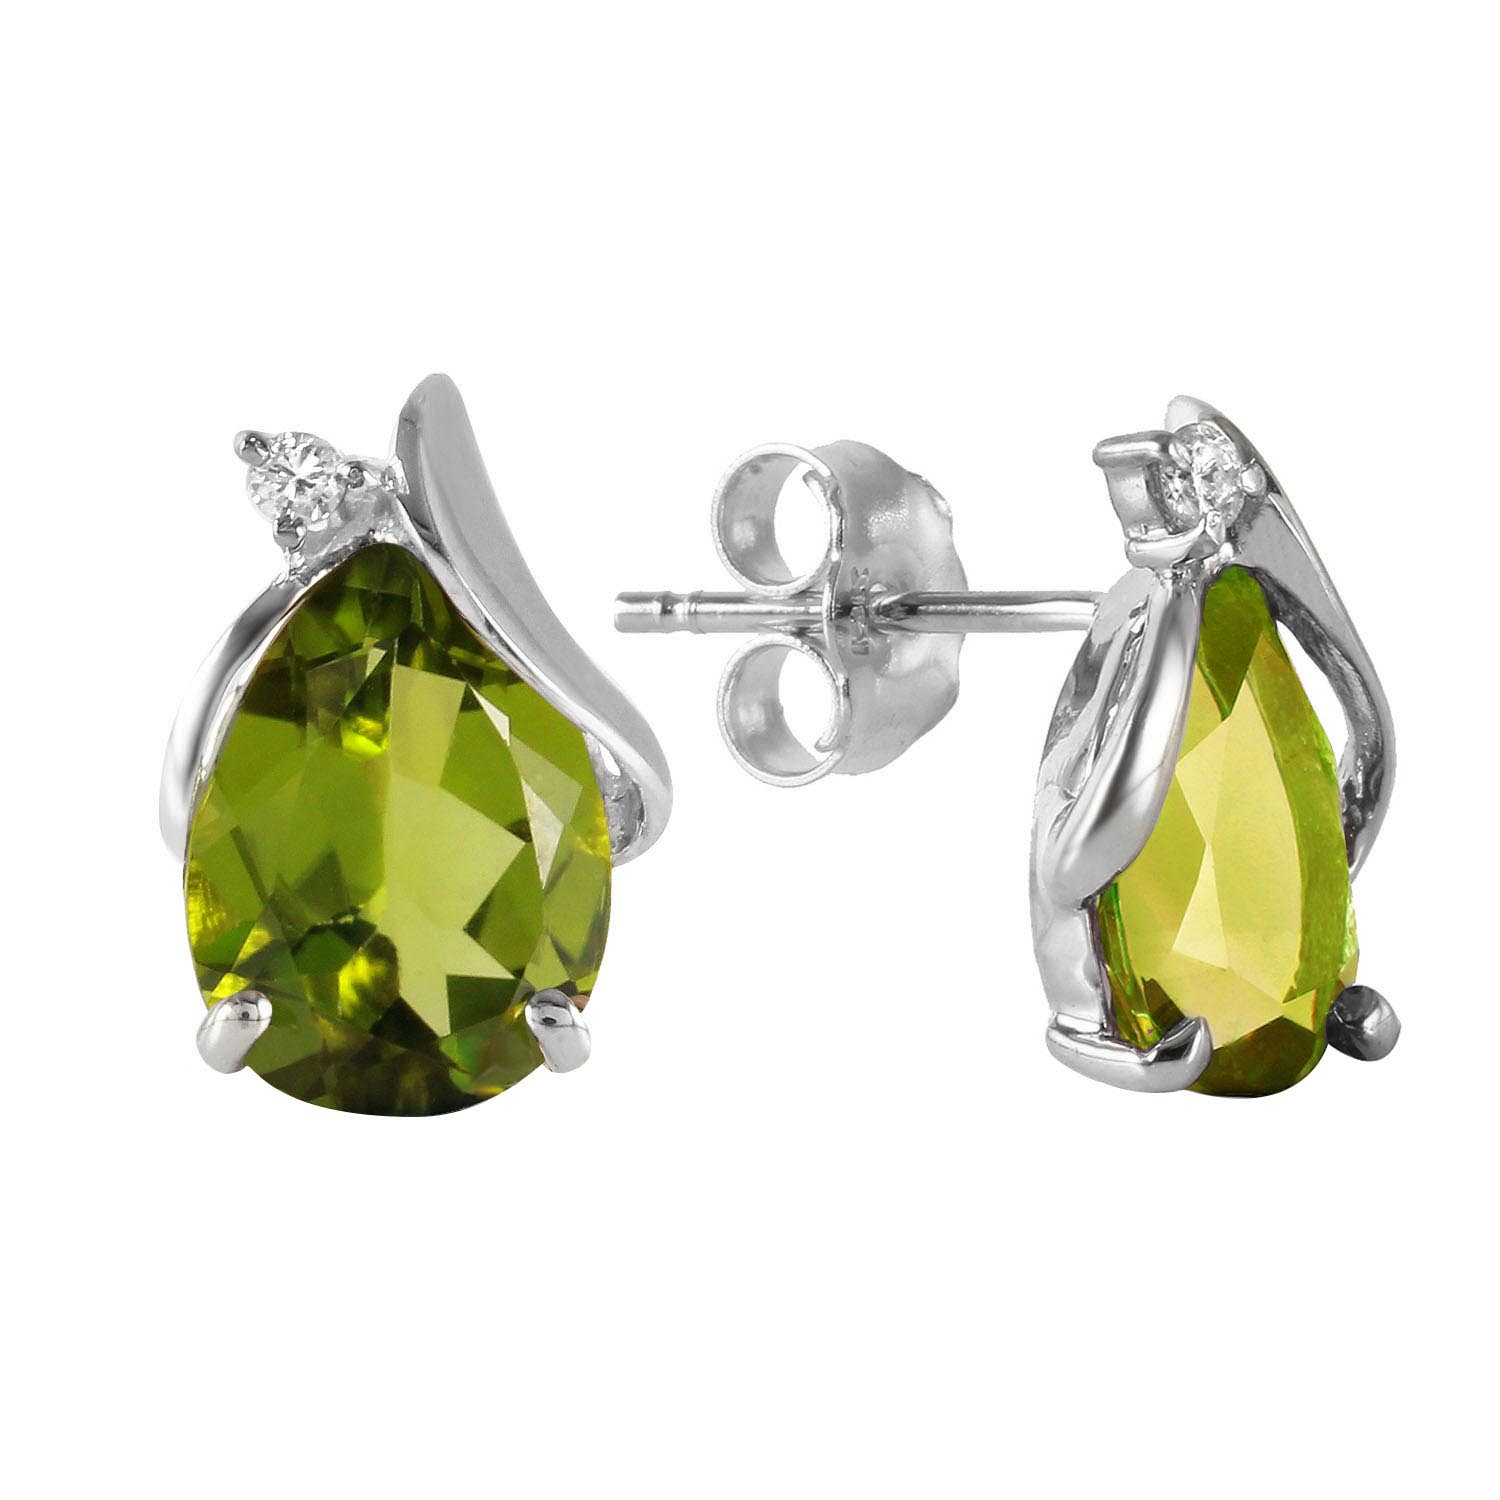 Peridot and Diamond Stud Earrings 4.2ctw in 9ct White Gold